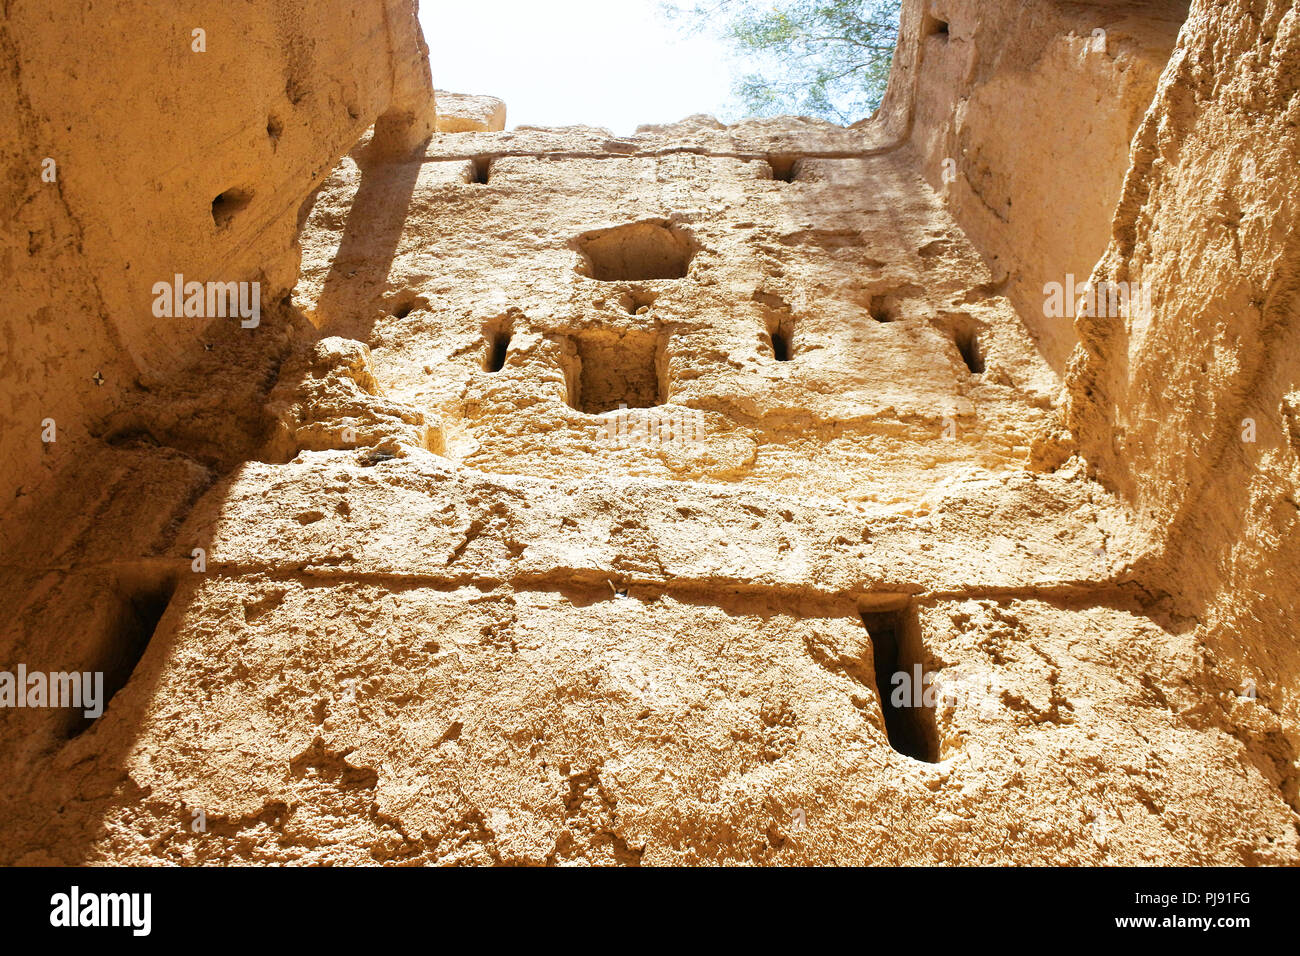 Heritage,Arabic,Old,Vintage, Broken., Old Arabic House, Arabic House. Broken Wall,Old Wall, Mud Wall, Bright,Brown.wall texture - Stock Image